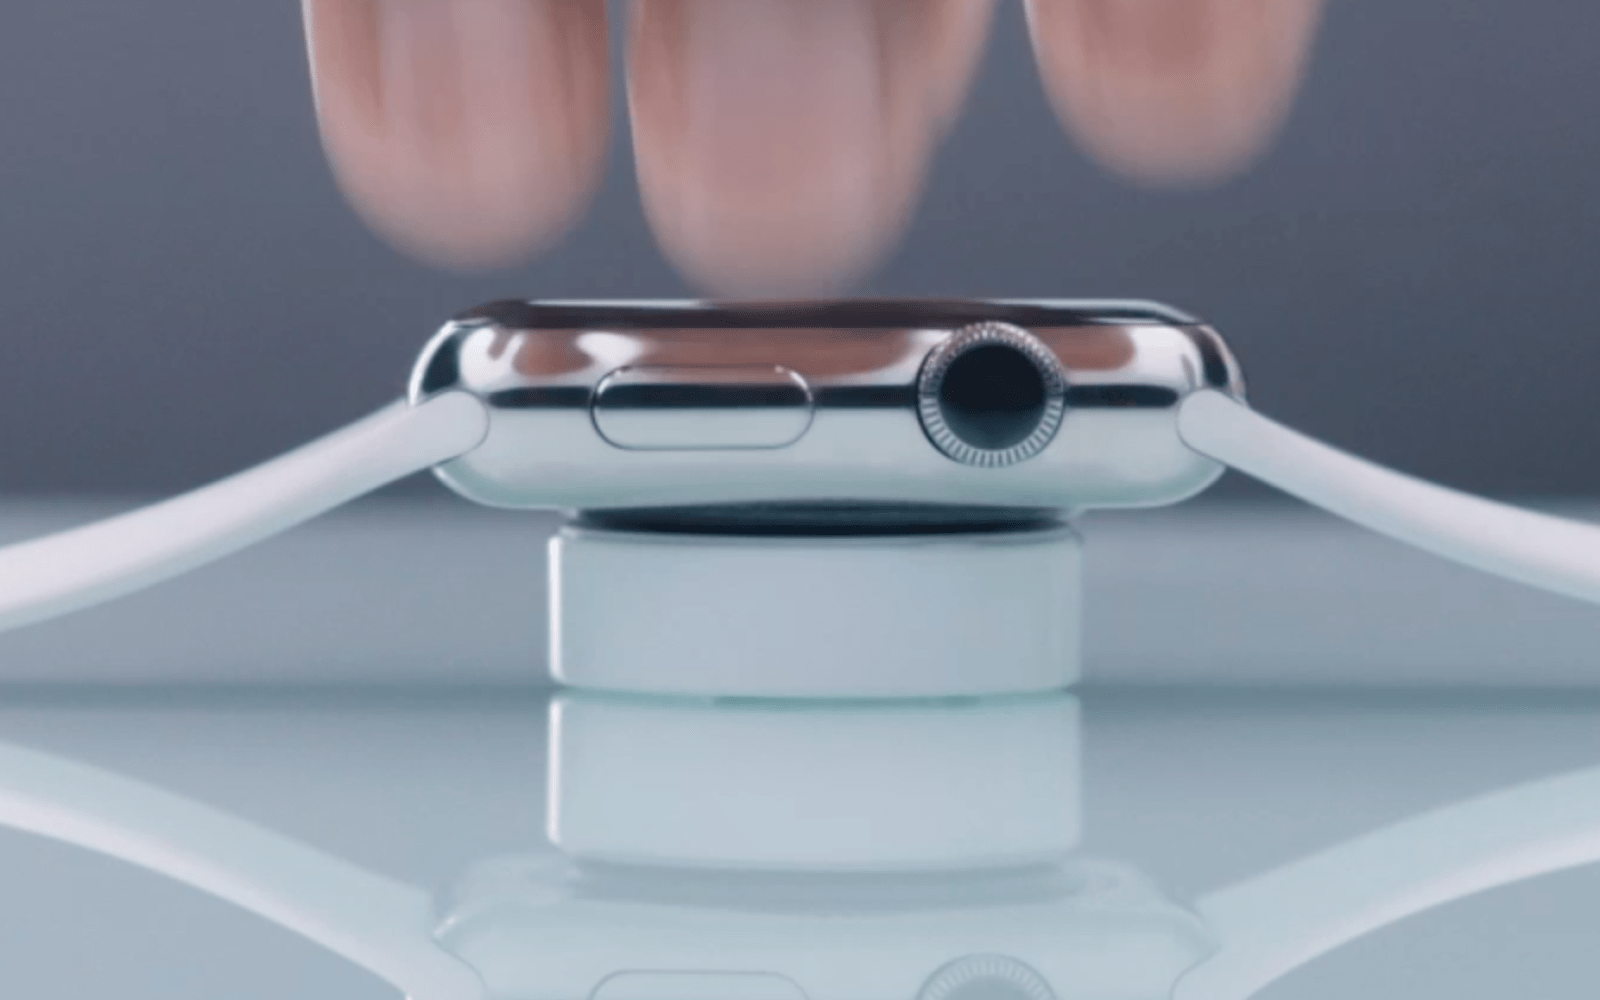 Stationary Apple Watch charging dock shown in Apple Environment ...